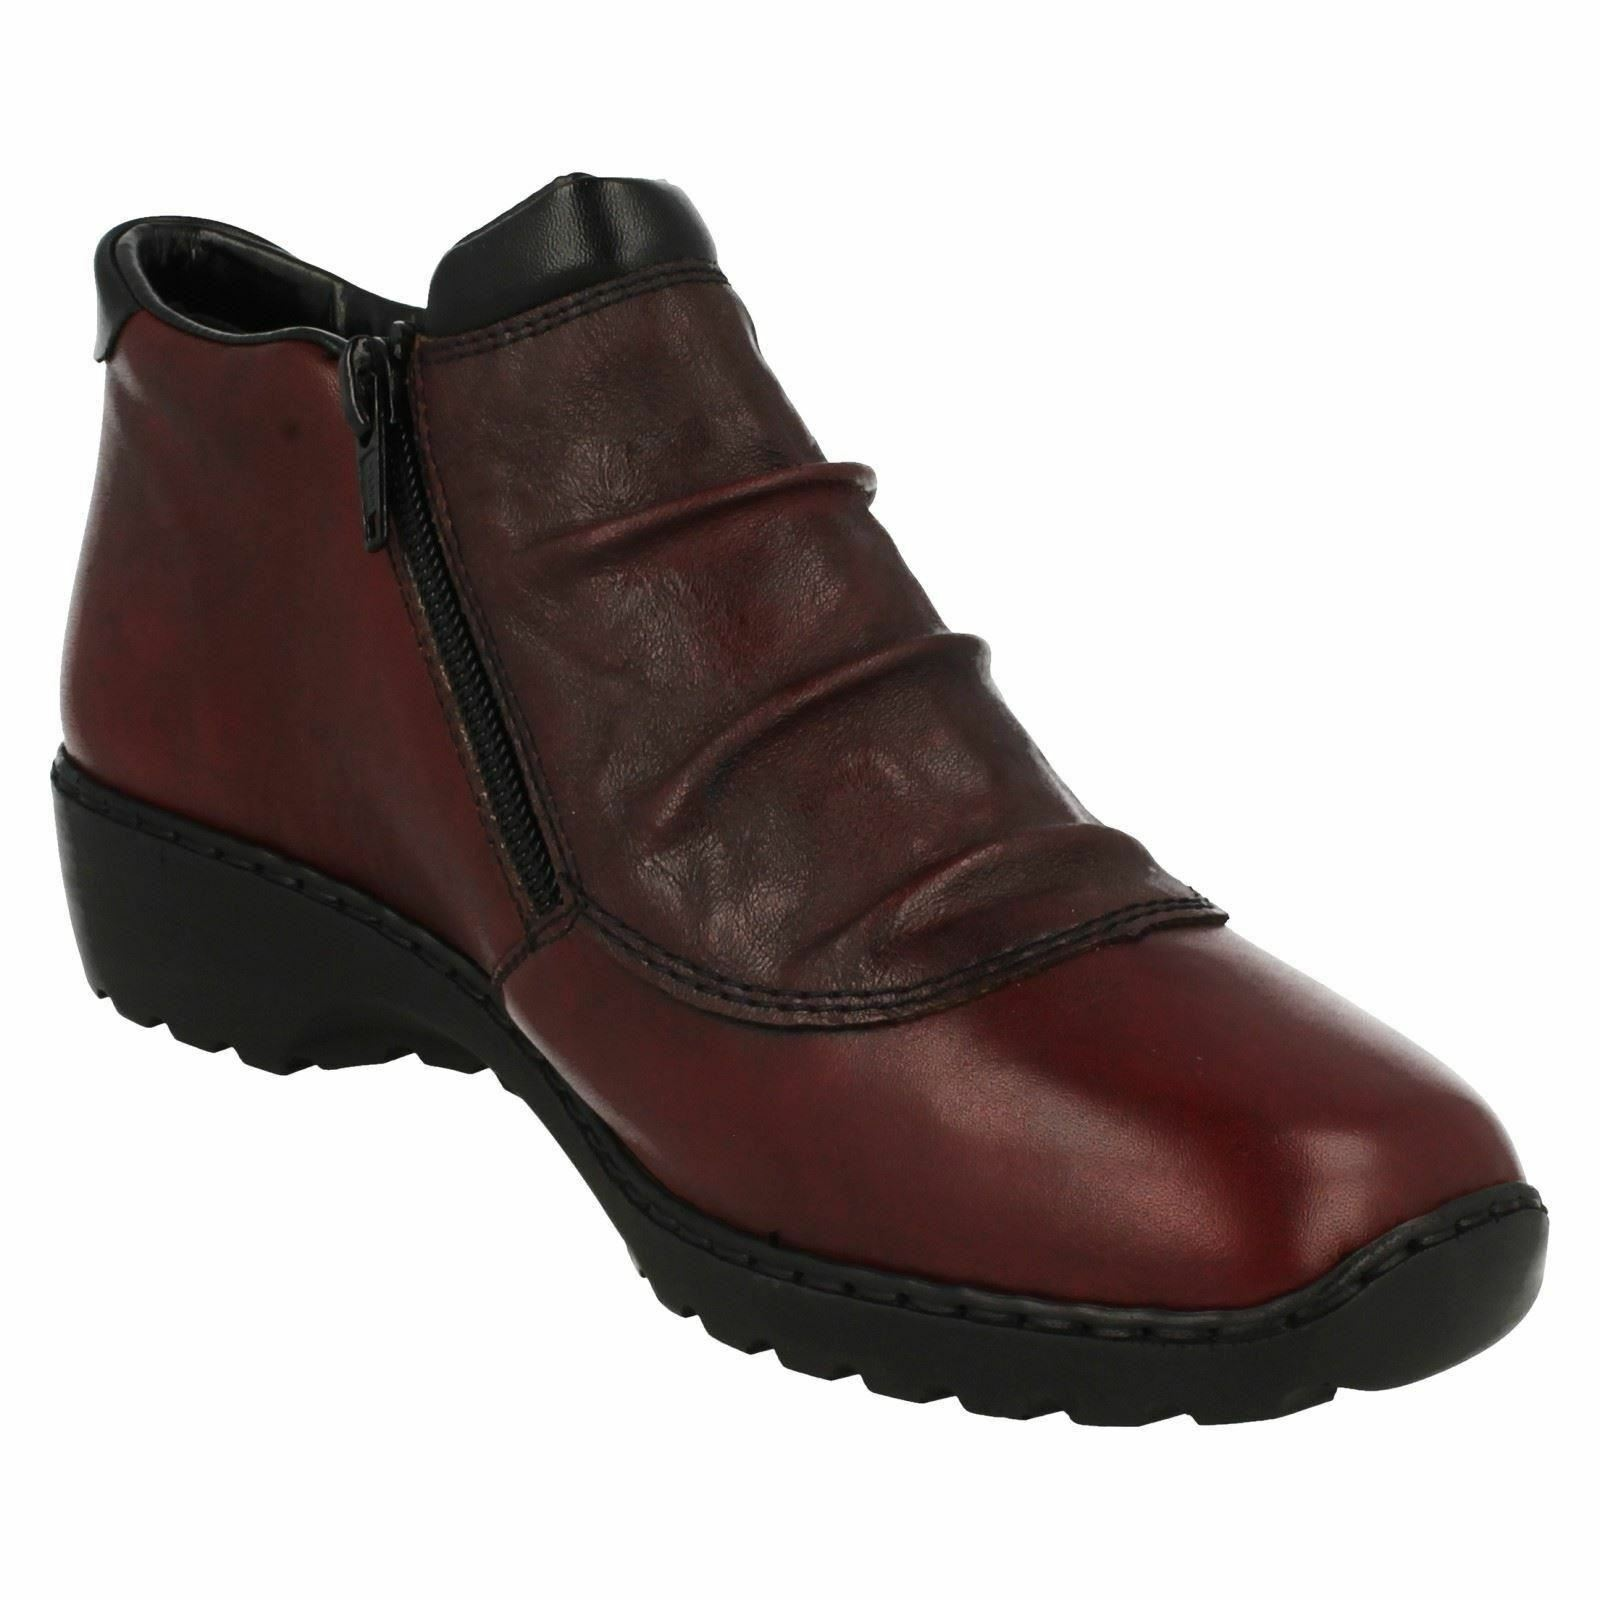 RIEKER LADIES FLAT LEATHER WINTER CASUAL EVERYDAY WEAR ANKLE BOOTS L6052